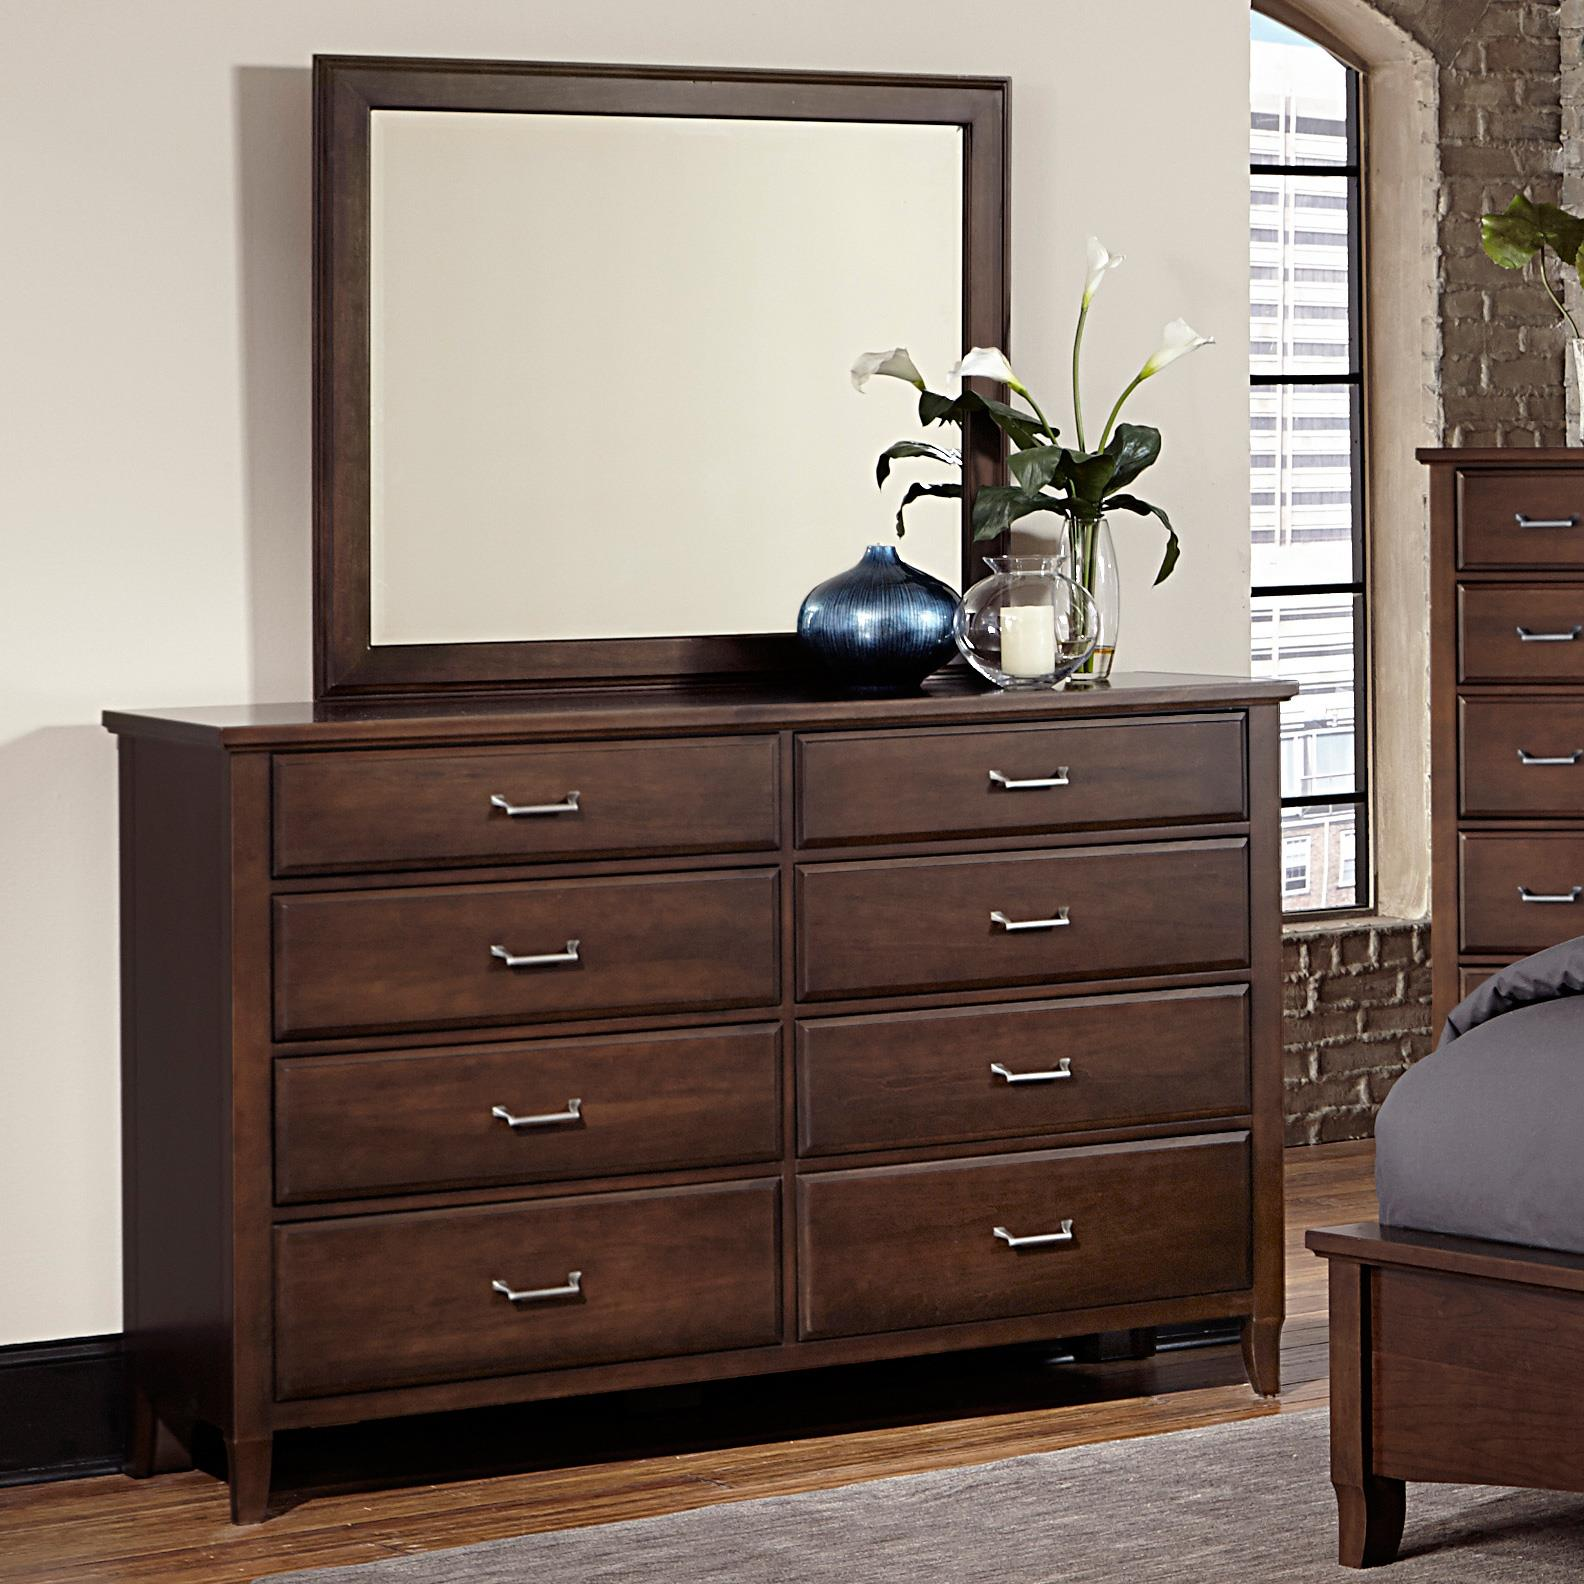 Vaughan Bassett Commentary Triple Dresser & Large Landscape Mirror - Item Number: 392-002+445